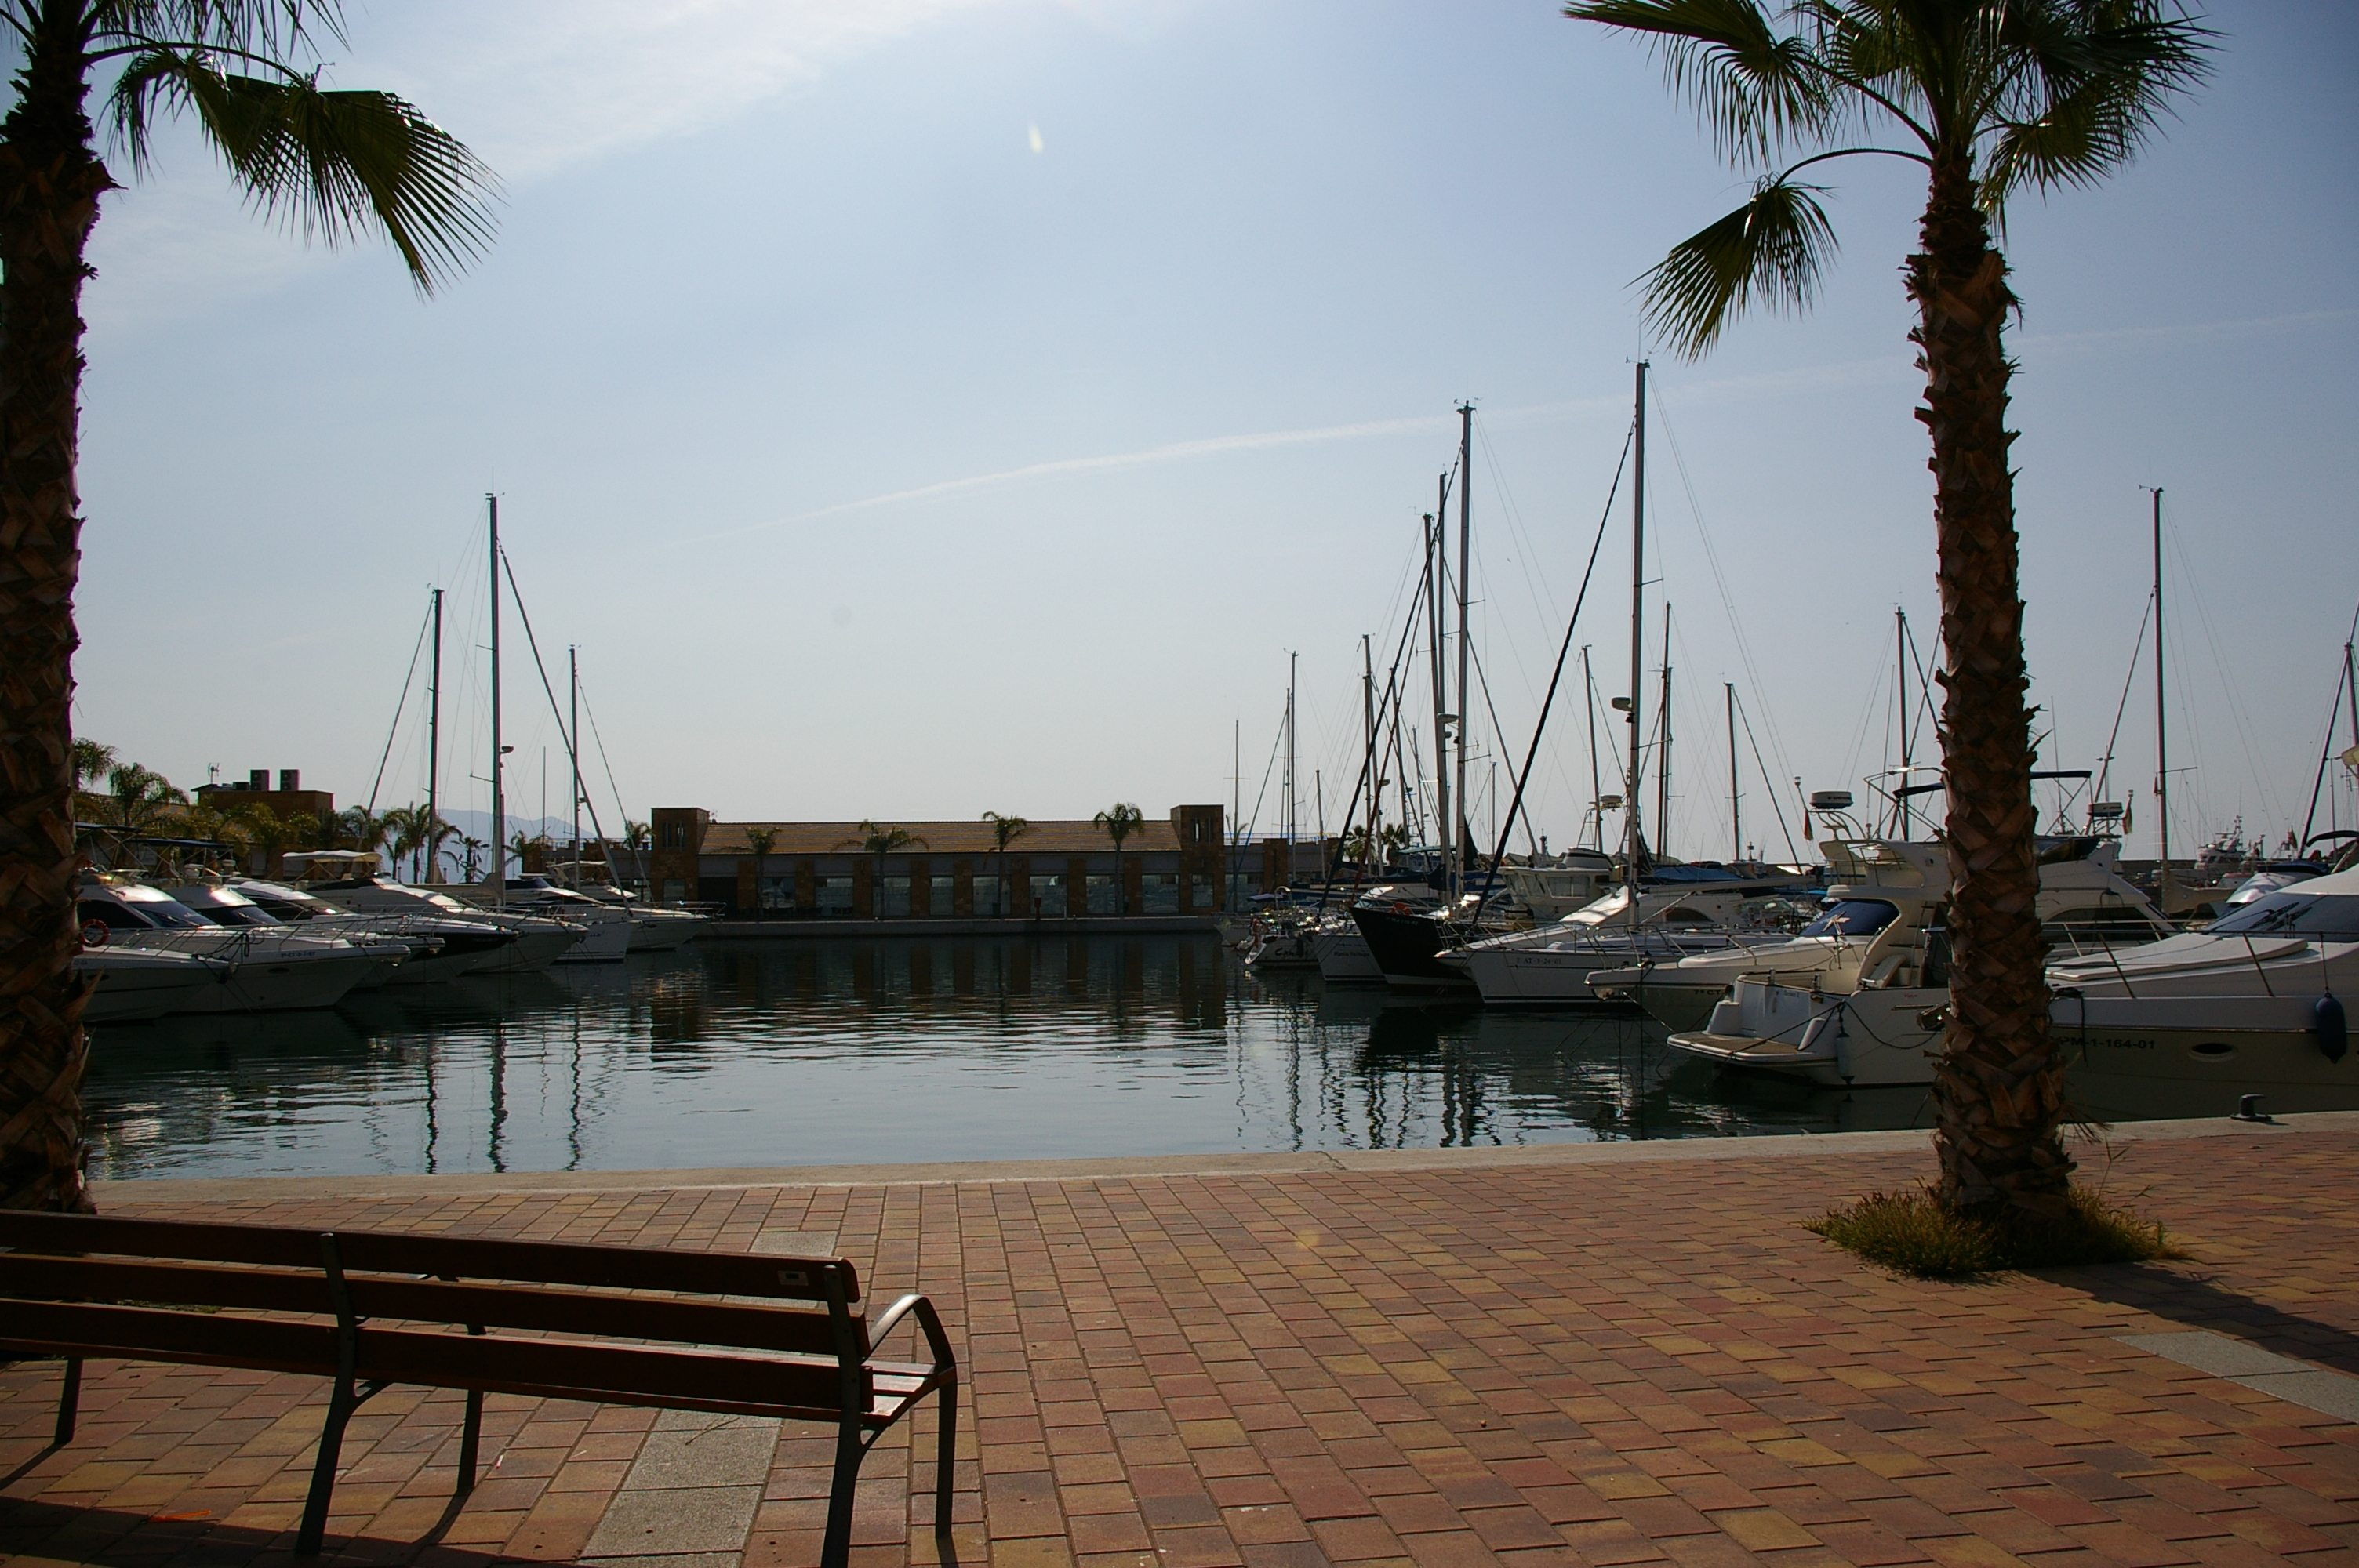 The Marina and Promenade